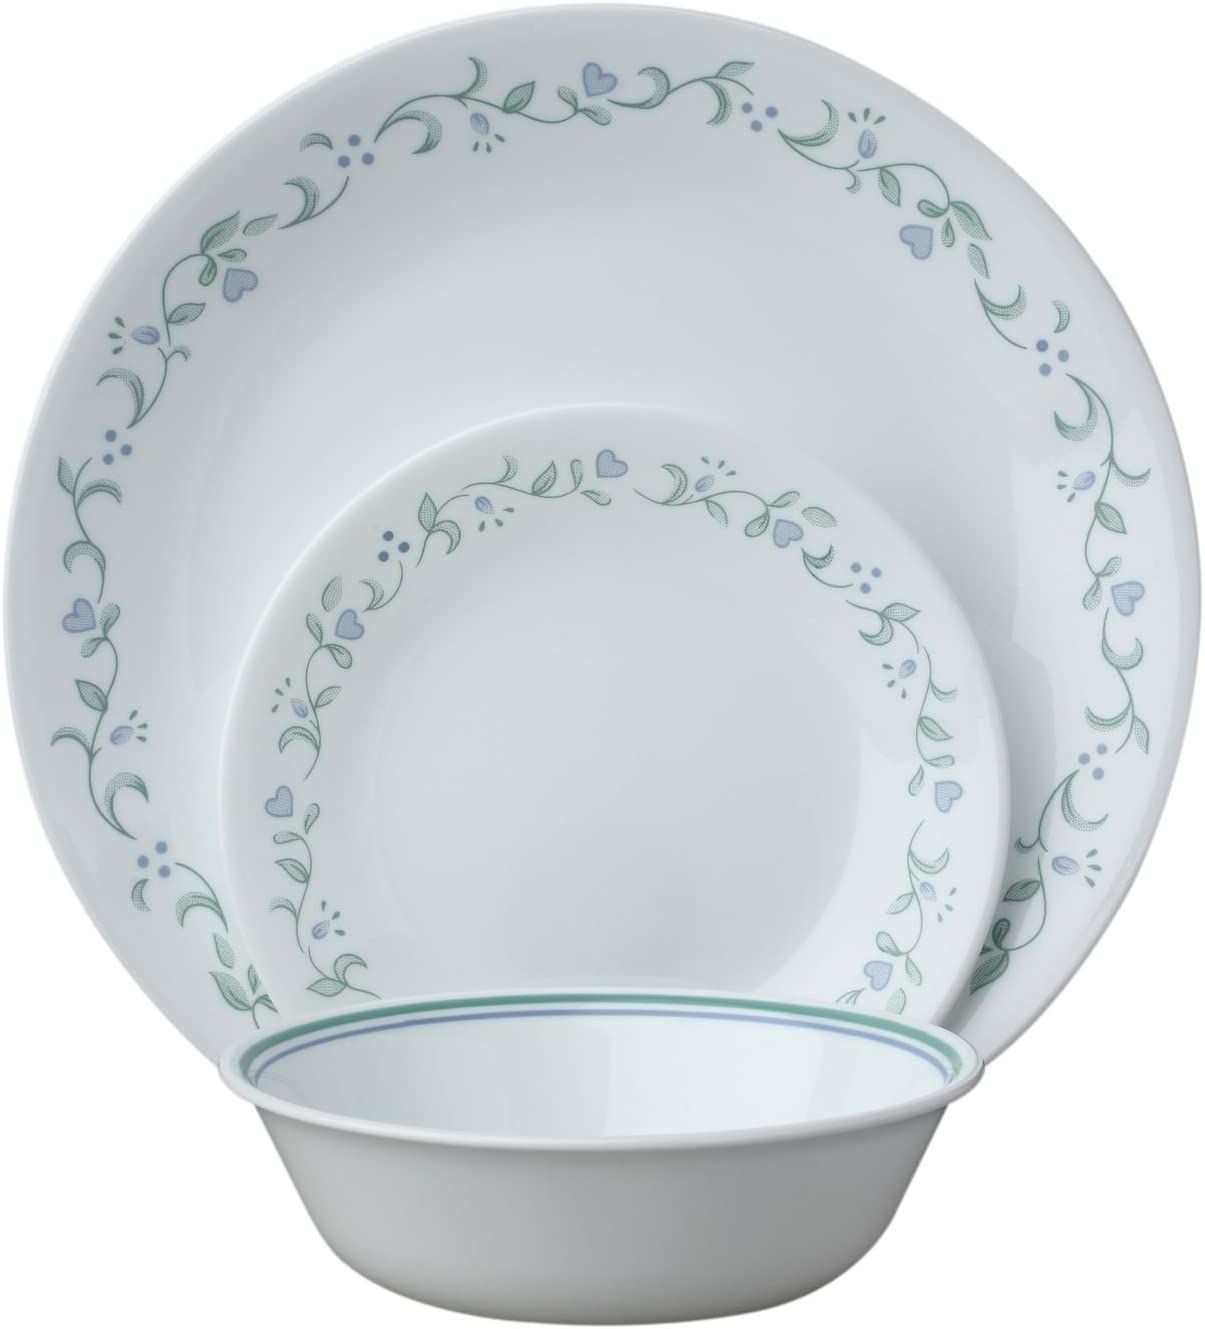 Corelle Country Cottage 12 Piece Service for 4, White, 12 - Piece Set